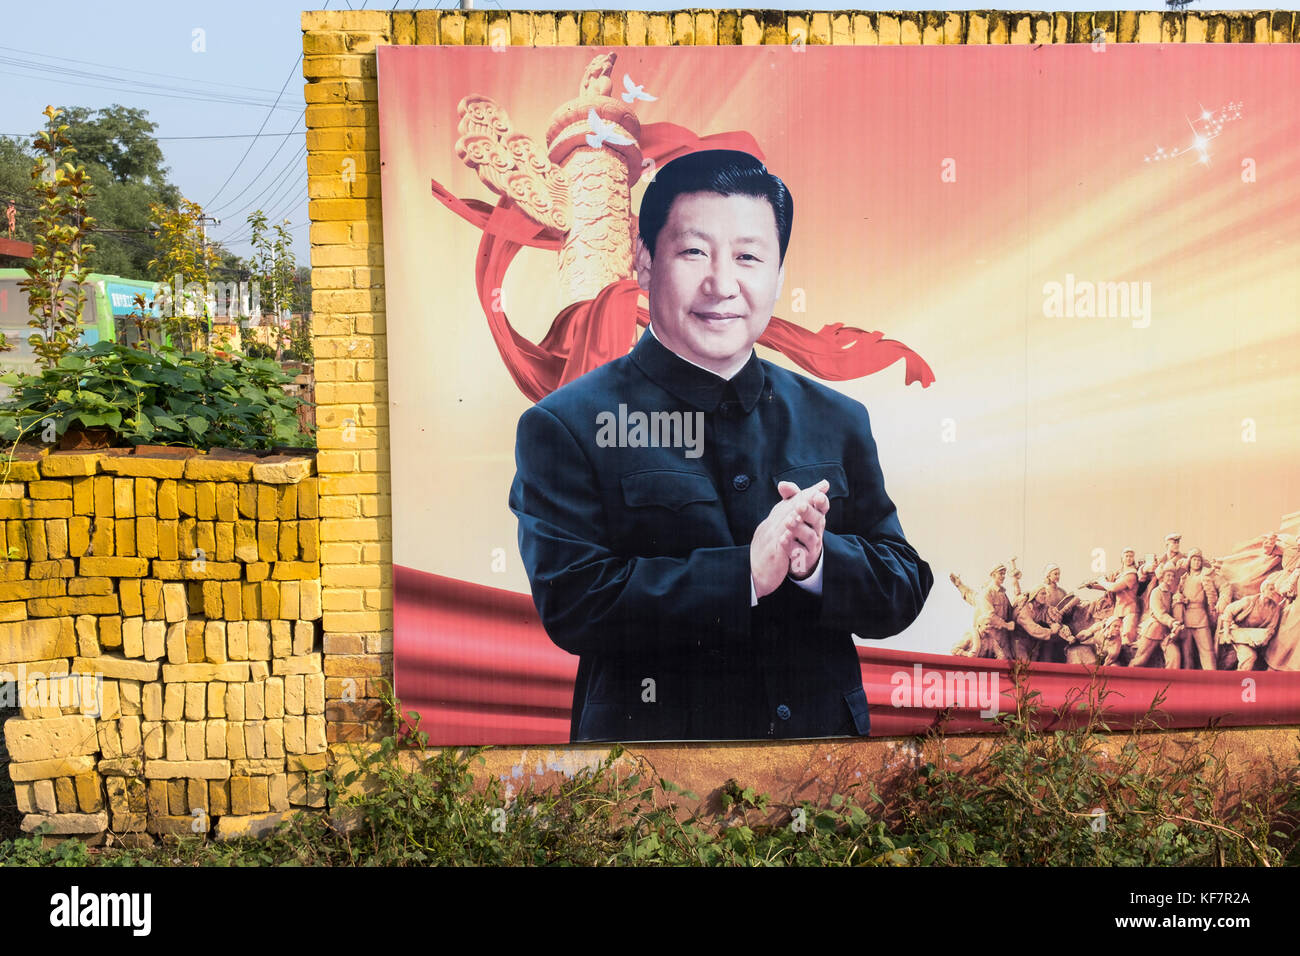 A poster featuring Xi Jinping, China's president, hangs on a wall in a village in Xiong'an New Area, Hebei - Stock Image